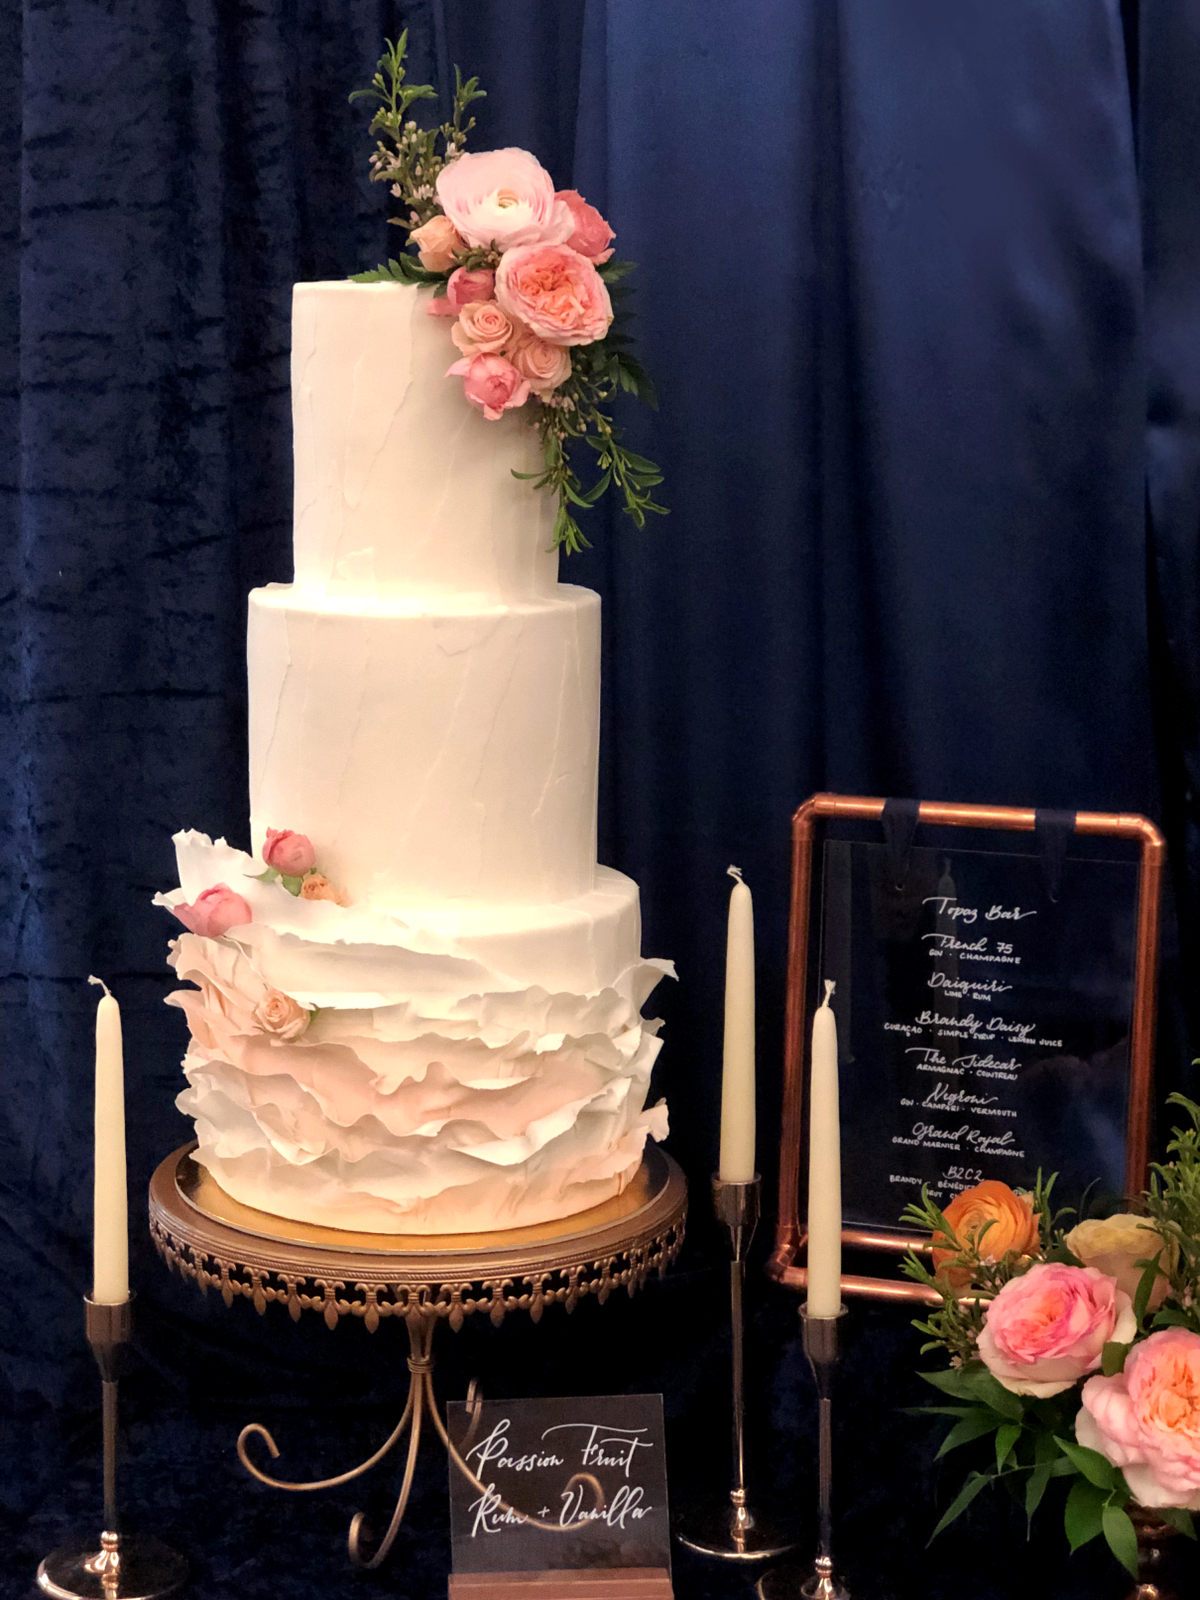 Whippt Desserts - Wedding Cake 2019 2